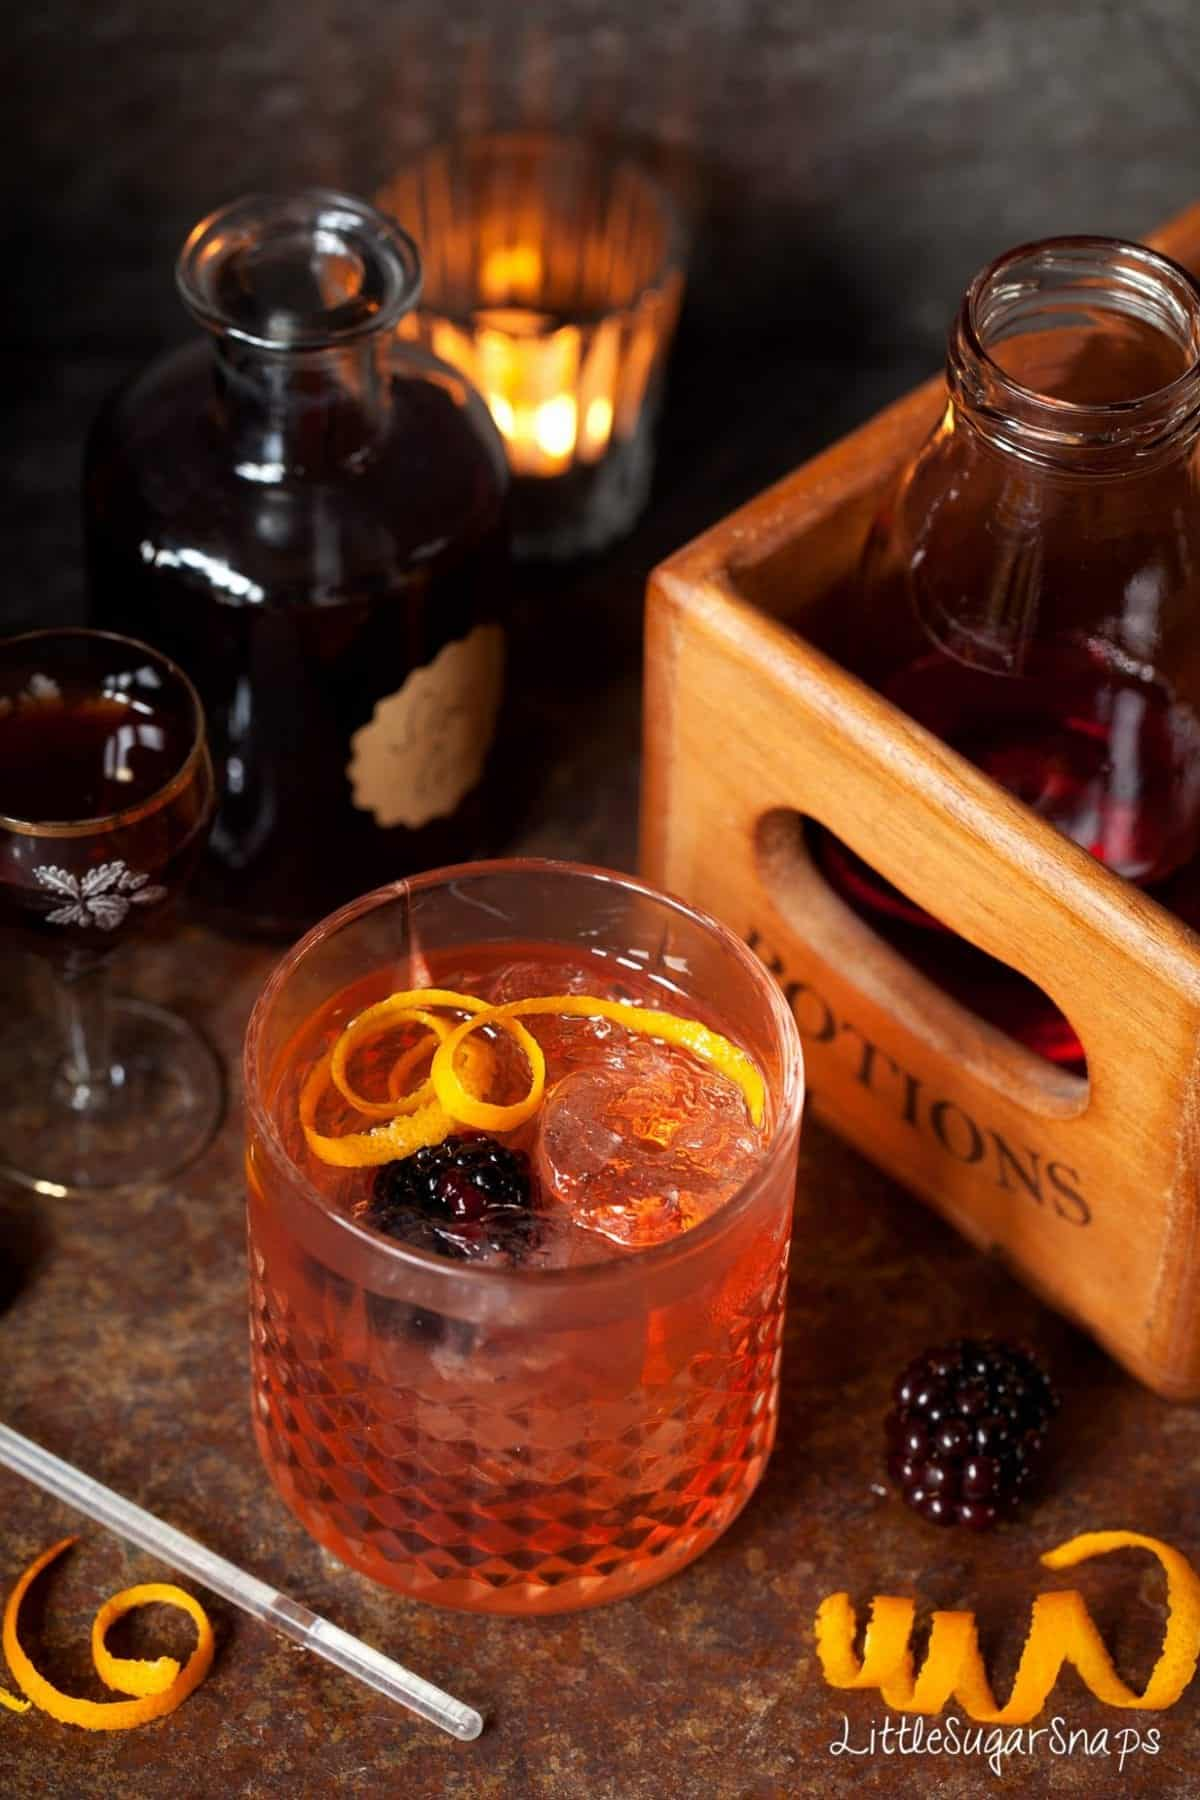 Winter Gin & Tonic made with sloe gin and campari